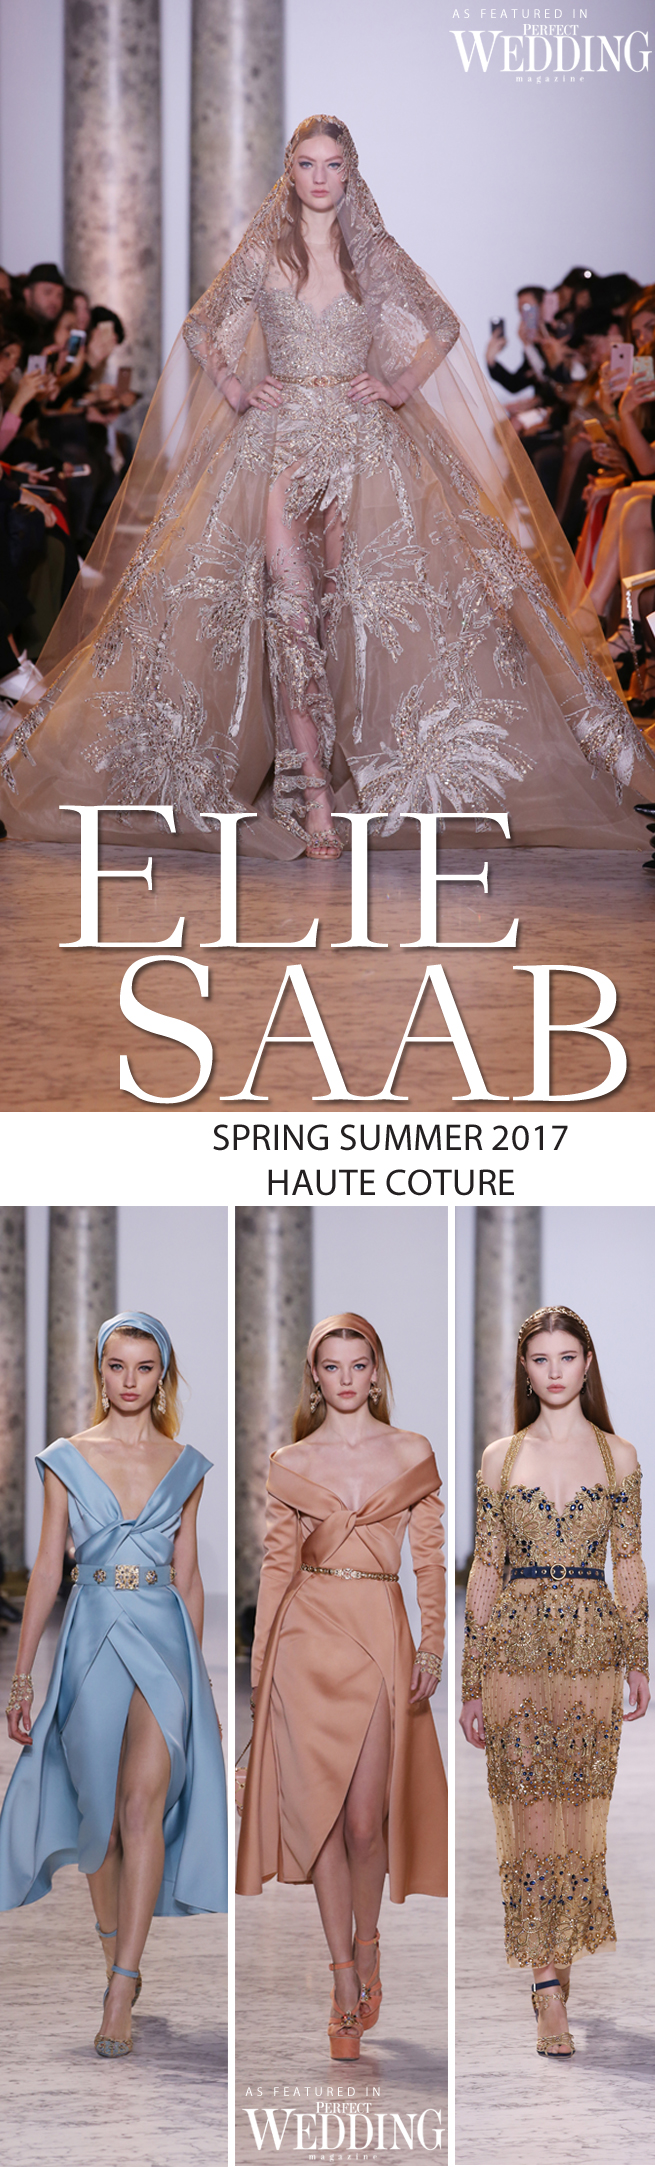 Elie Saab, Elie Saab Couture, Elie Saab Haute Couture, Elie Saab Spring Summer 2017 Haute Couture, Perfect Wedding Magazine, Perfect Wedding Blog